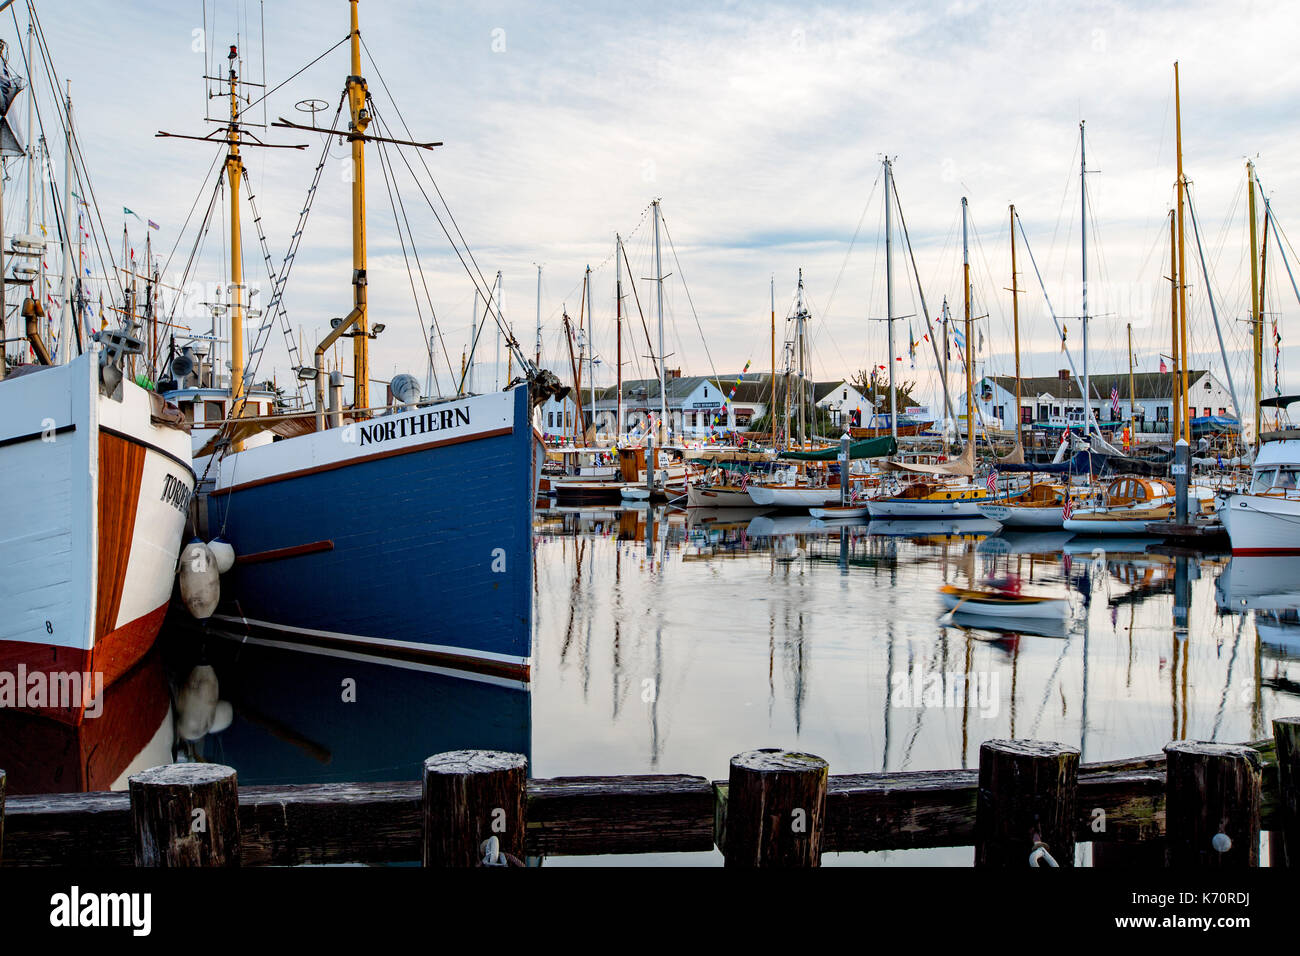 Wooden Boat Show Port Townsend, sailing boat in marina harbor, Point Hudson. Stock Photo